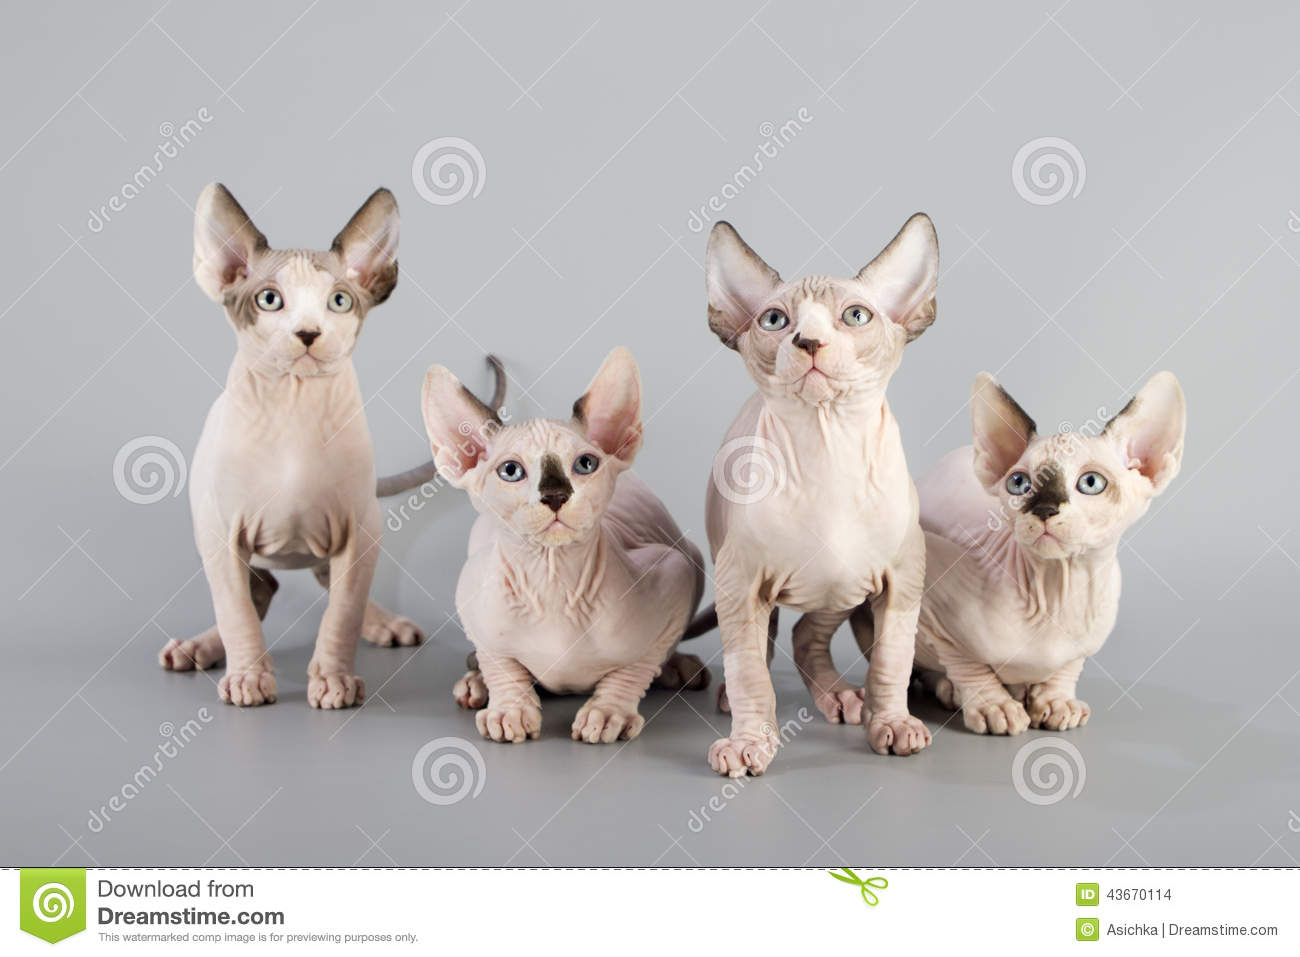 Canadese sphynxkat